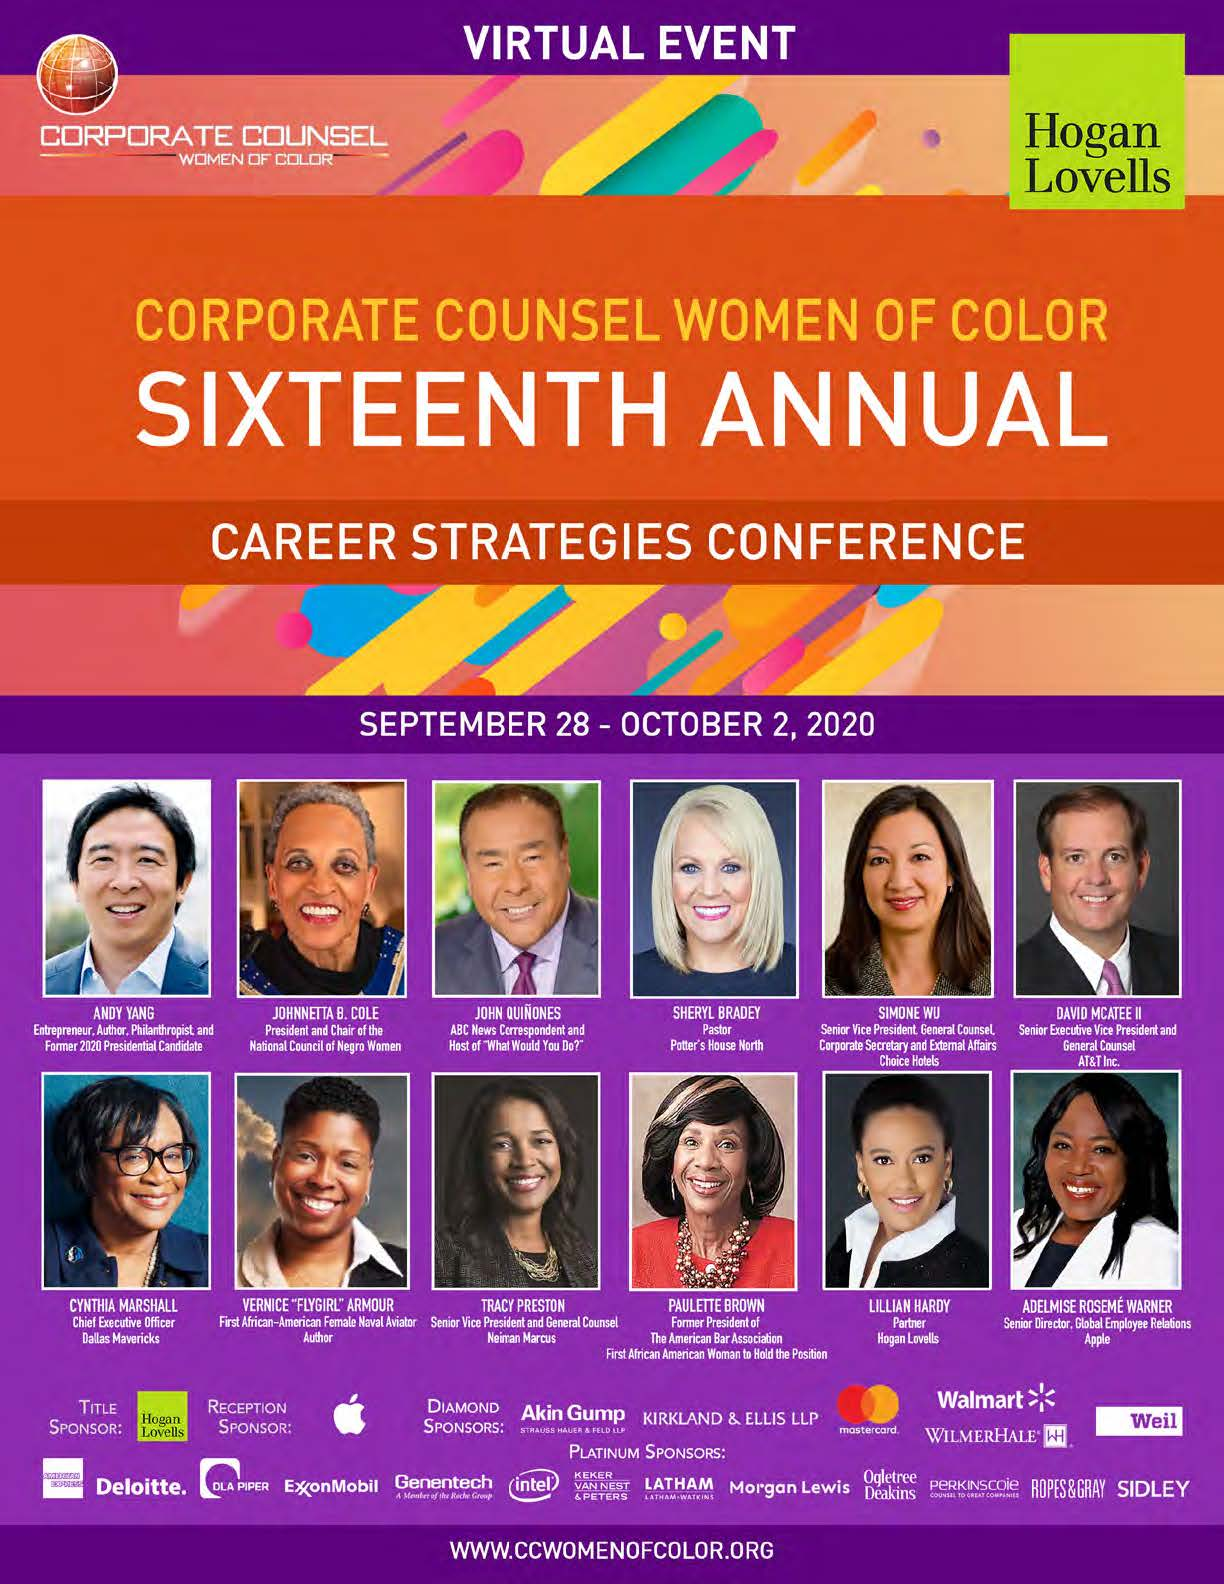 16th Annual CCWC Career Strategies Conference